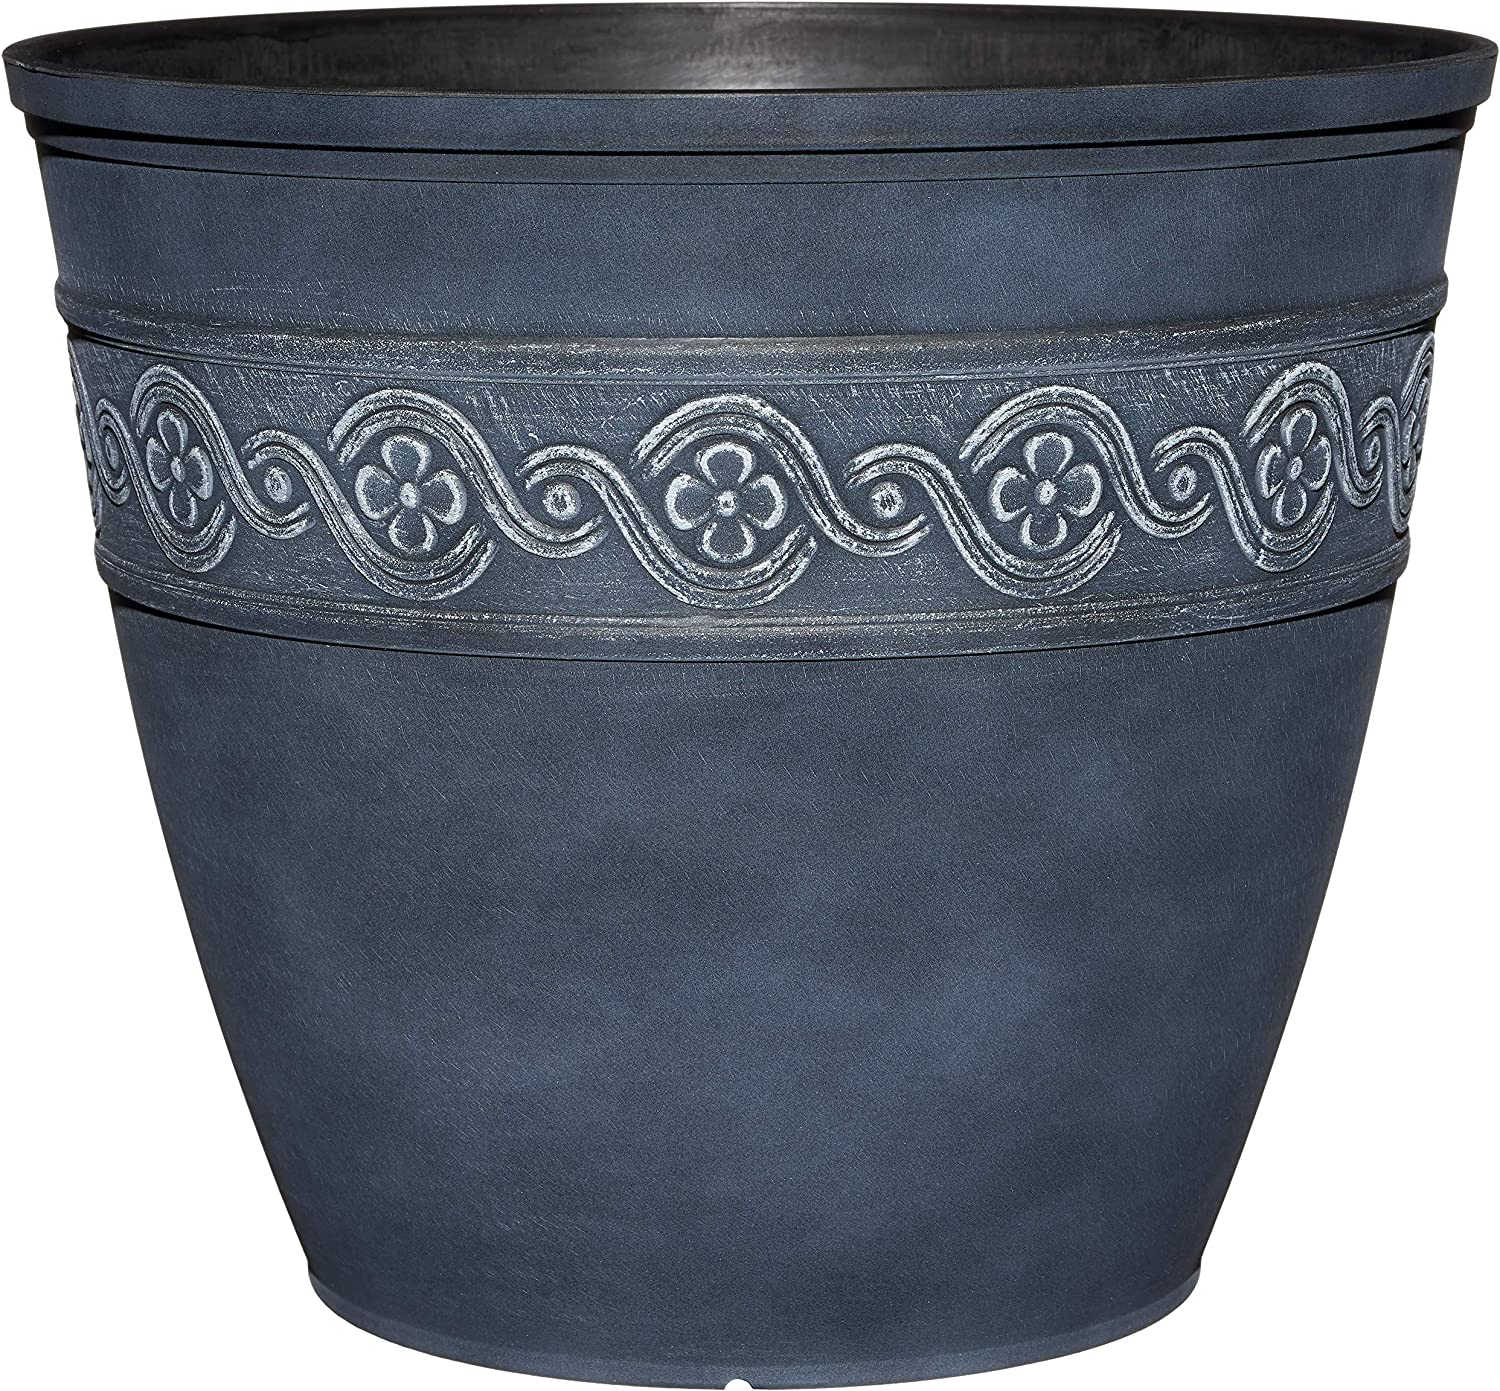 "Classic Home and Garden 9411D-515 Corinthian Round Planter, 10"", Storm"